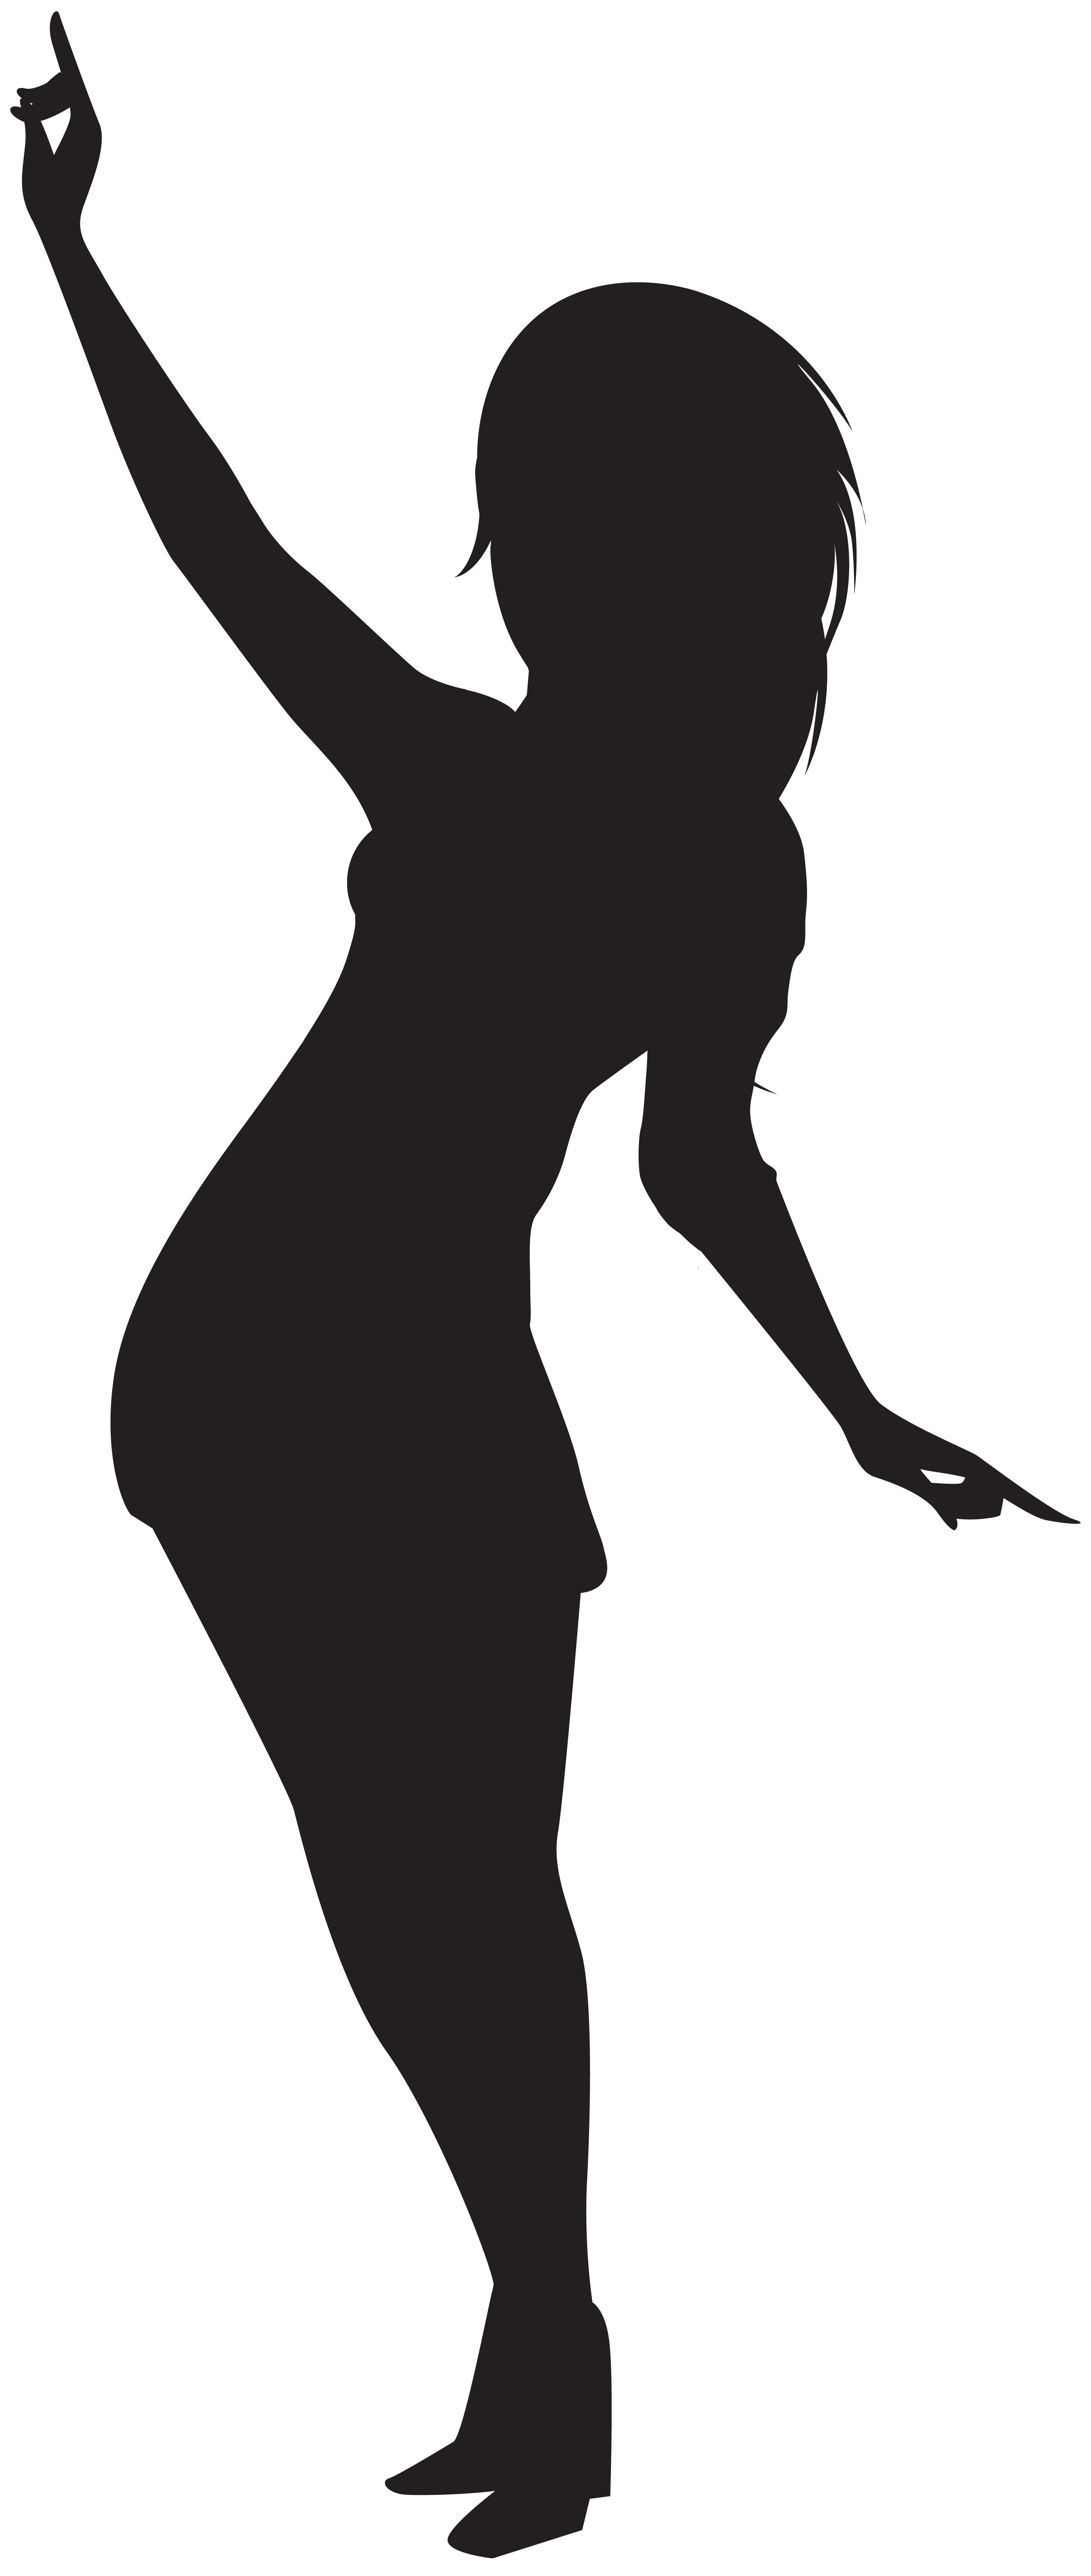 3389x8000 Dancing Girl Silhouette Png Clip Artu200b Gallery Yopriceville